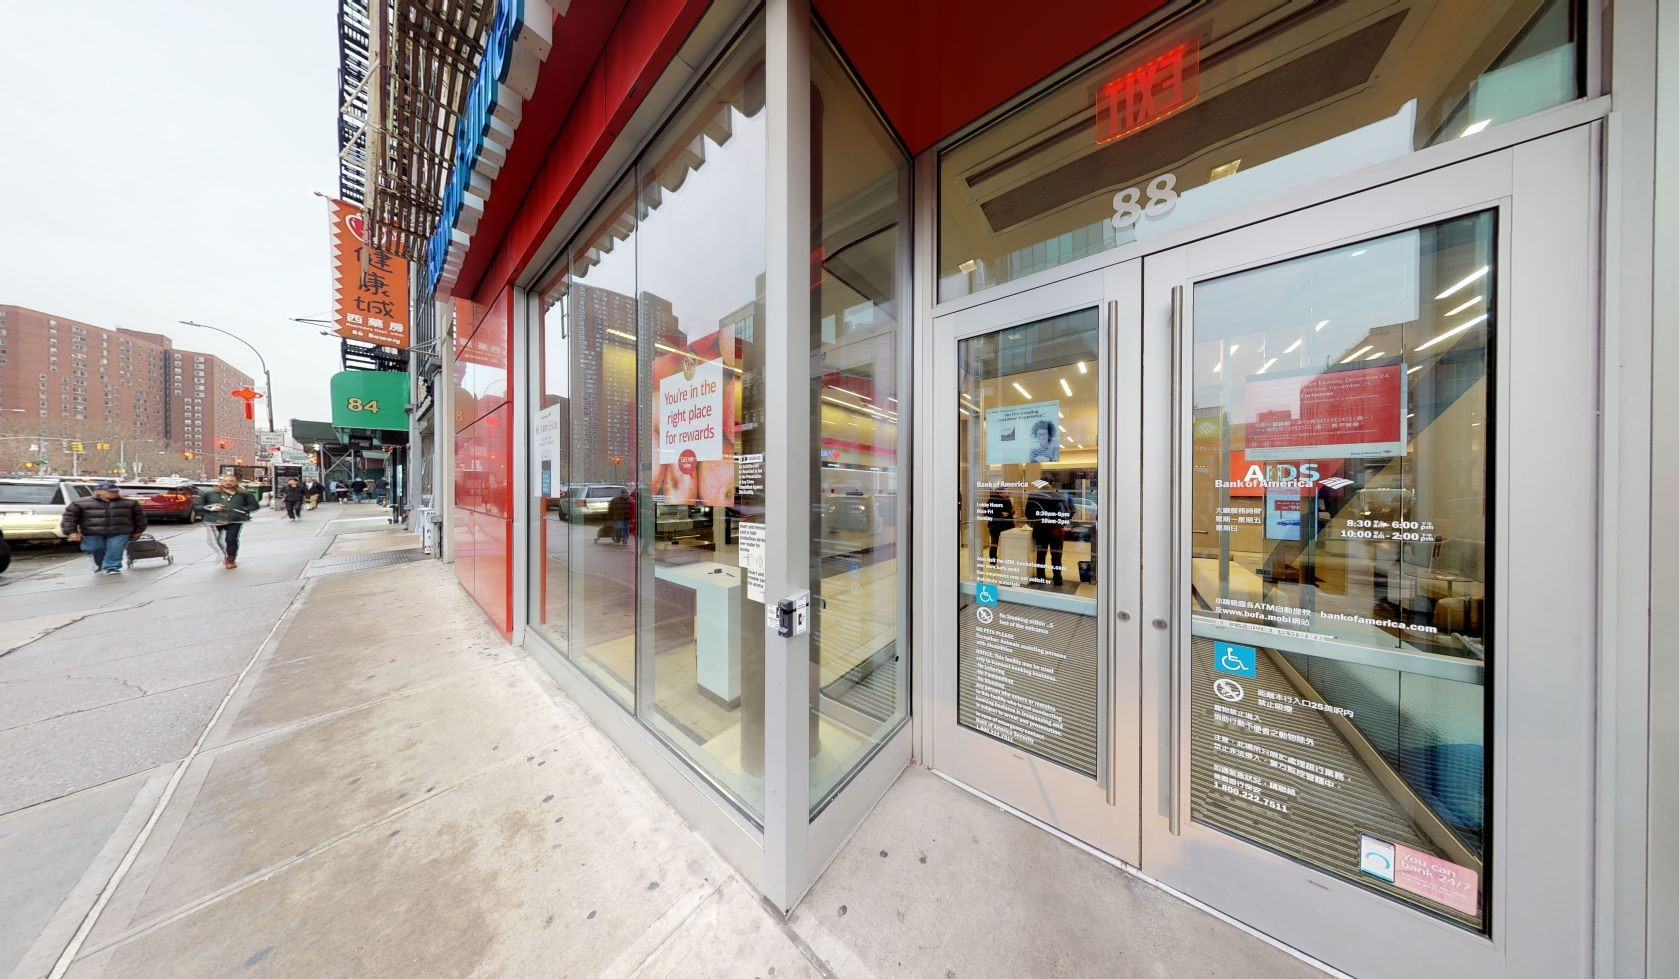 Bank of America financial center with walk-up ATM   88 Bowery, New York, NY 10013